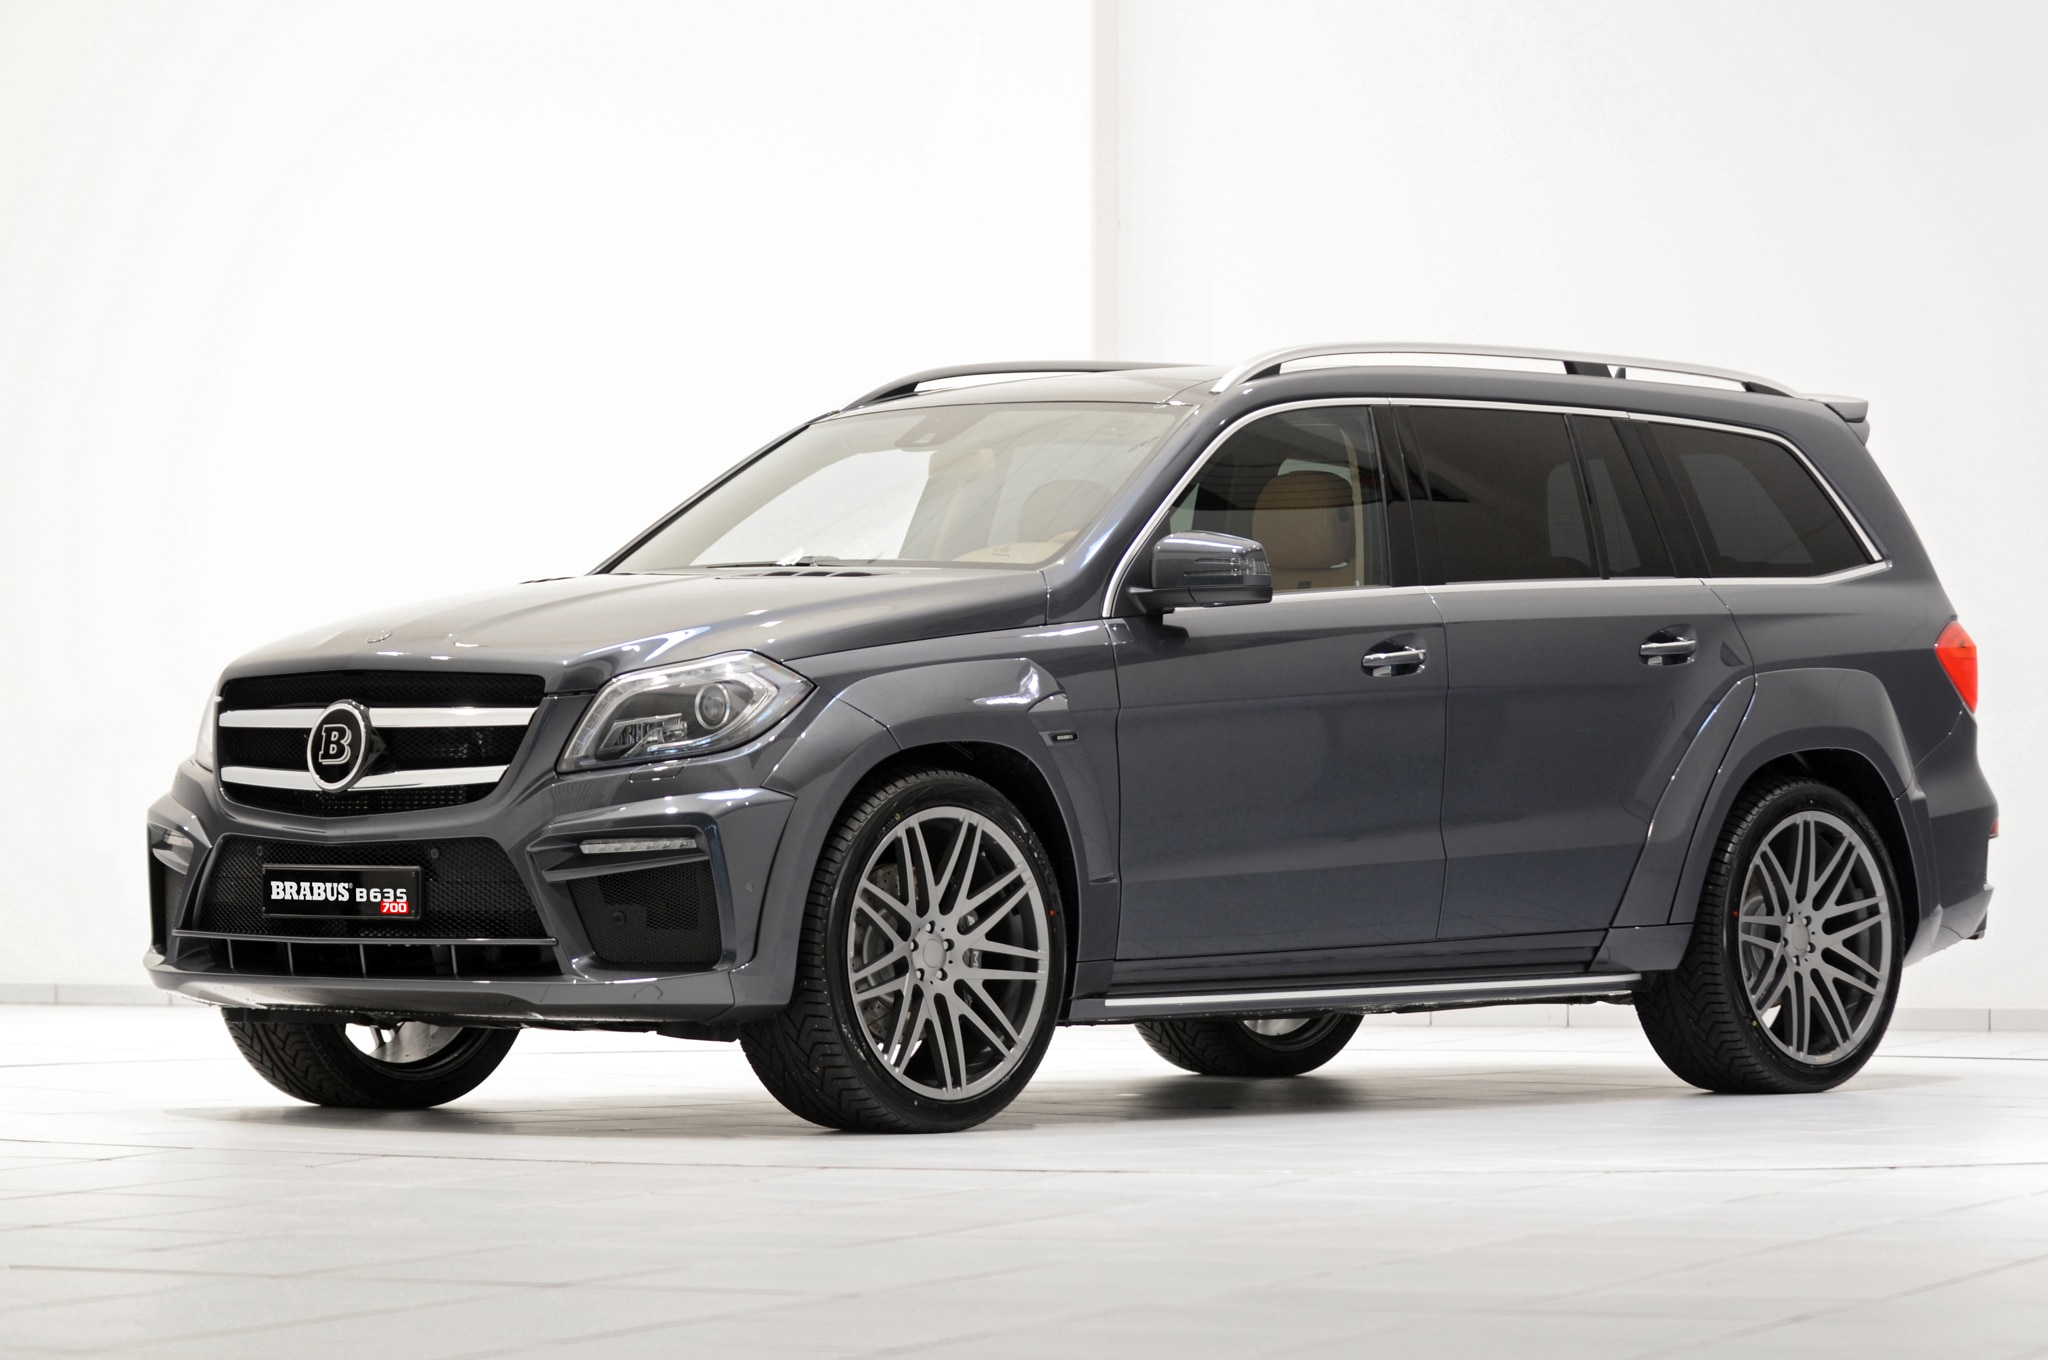 Brabus Mercedes Benz GL63 AMG Front Three Quarter1